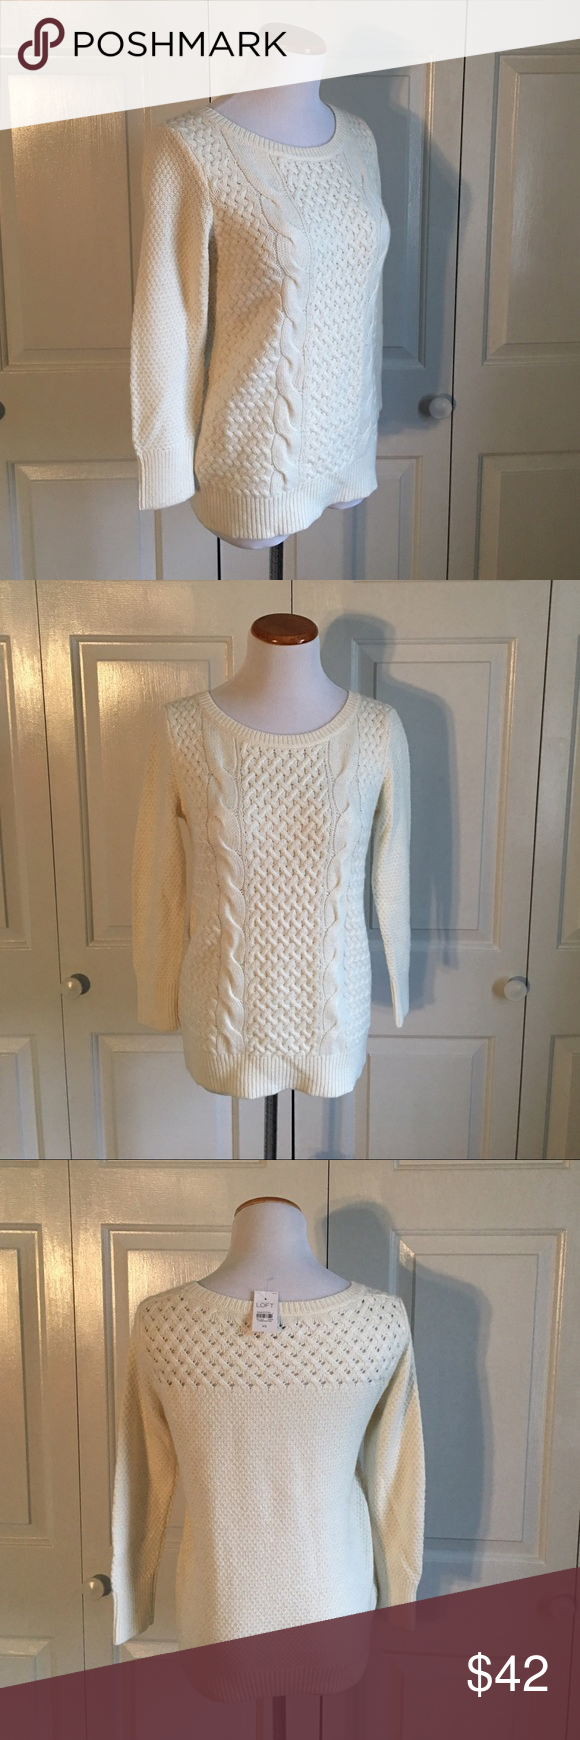 LOFT Cable Knit Sweater Cream colored cable knit sweater from LOFT ...